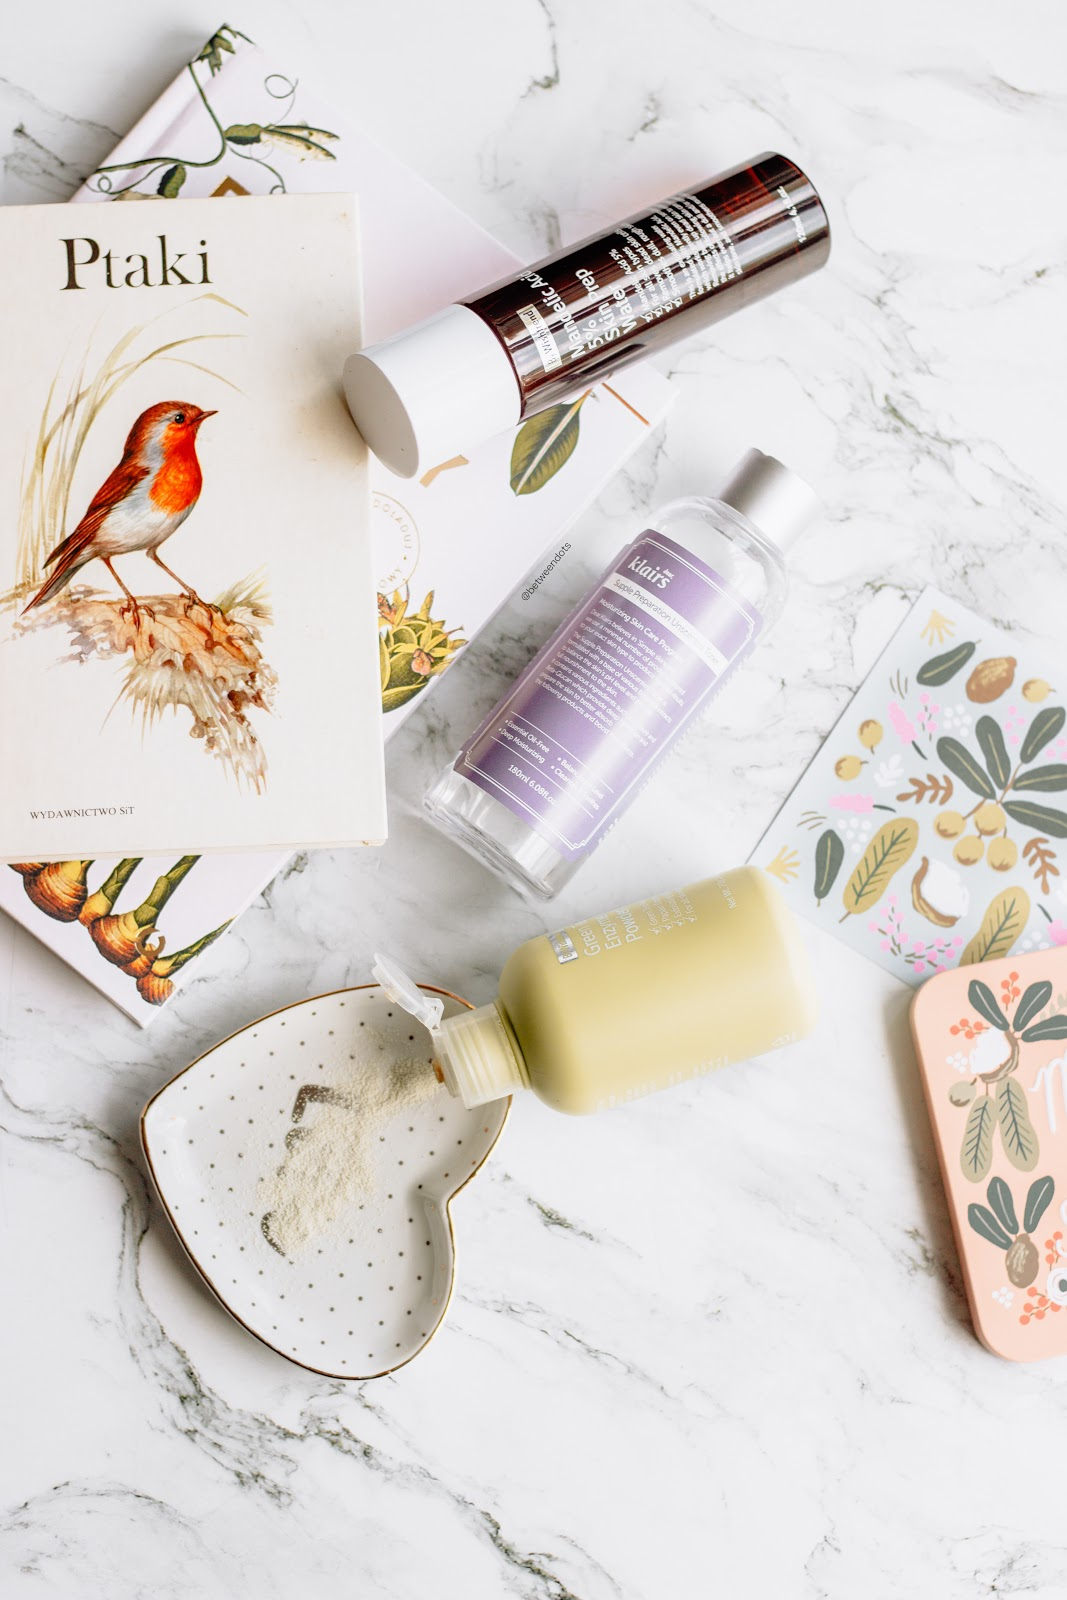 Wishtrend Cruelty Free Brand Week By Wishtrend Green Tea & Enzyme Powder Wash By Wishtrend Mandelic Acid 5% Prep Water Klairs Supple Preparation Unscented Toner  Kbeauty Asian Beauty Korean Skincare